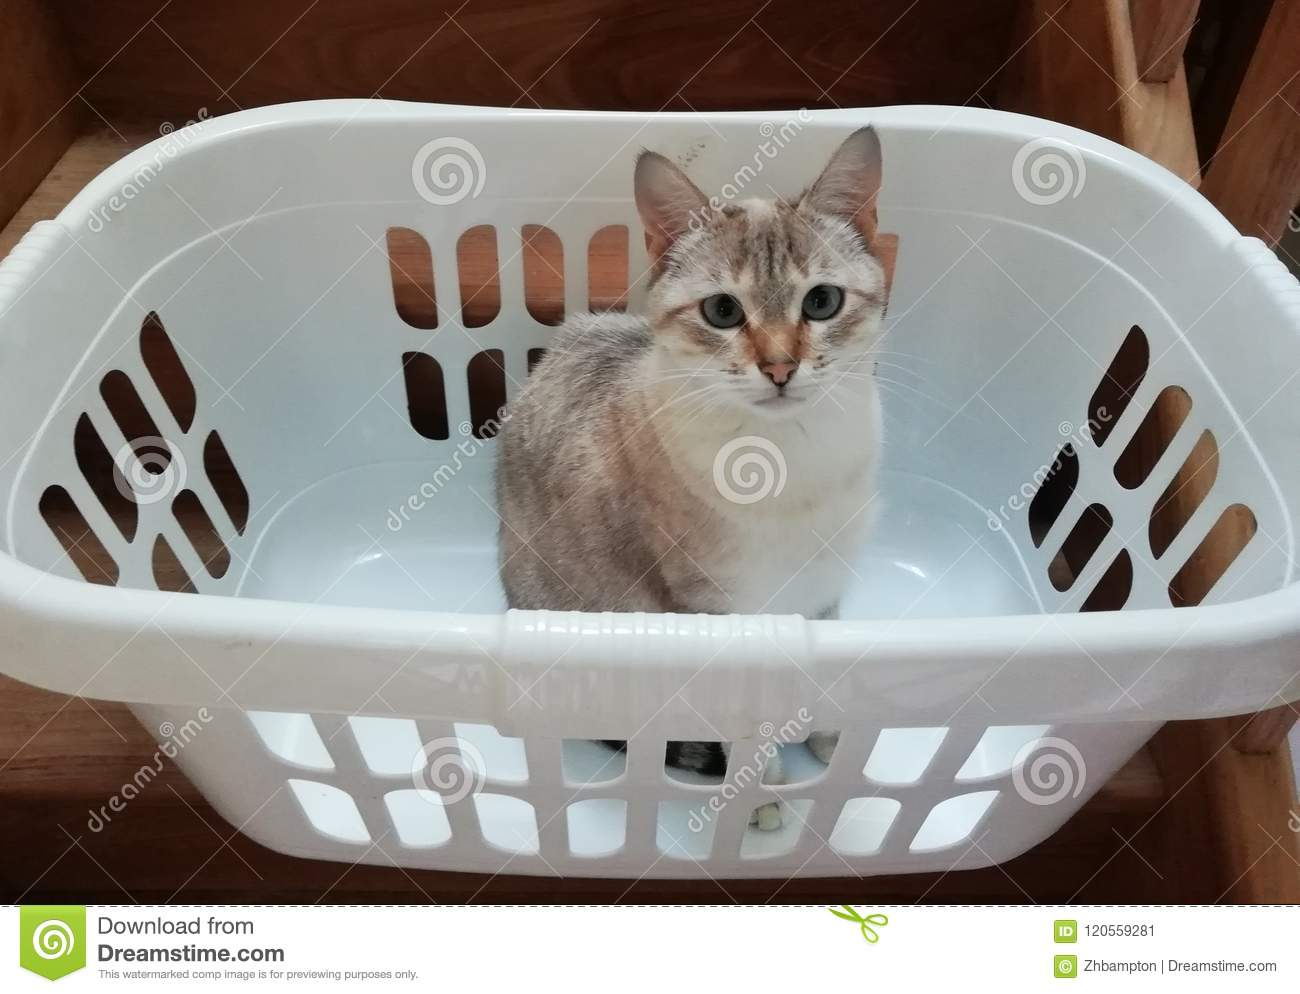 cat in a laundry basket stock image image of basket 120559281